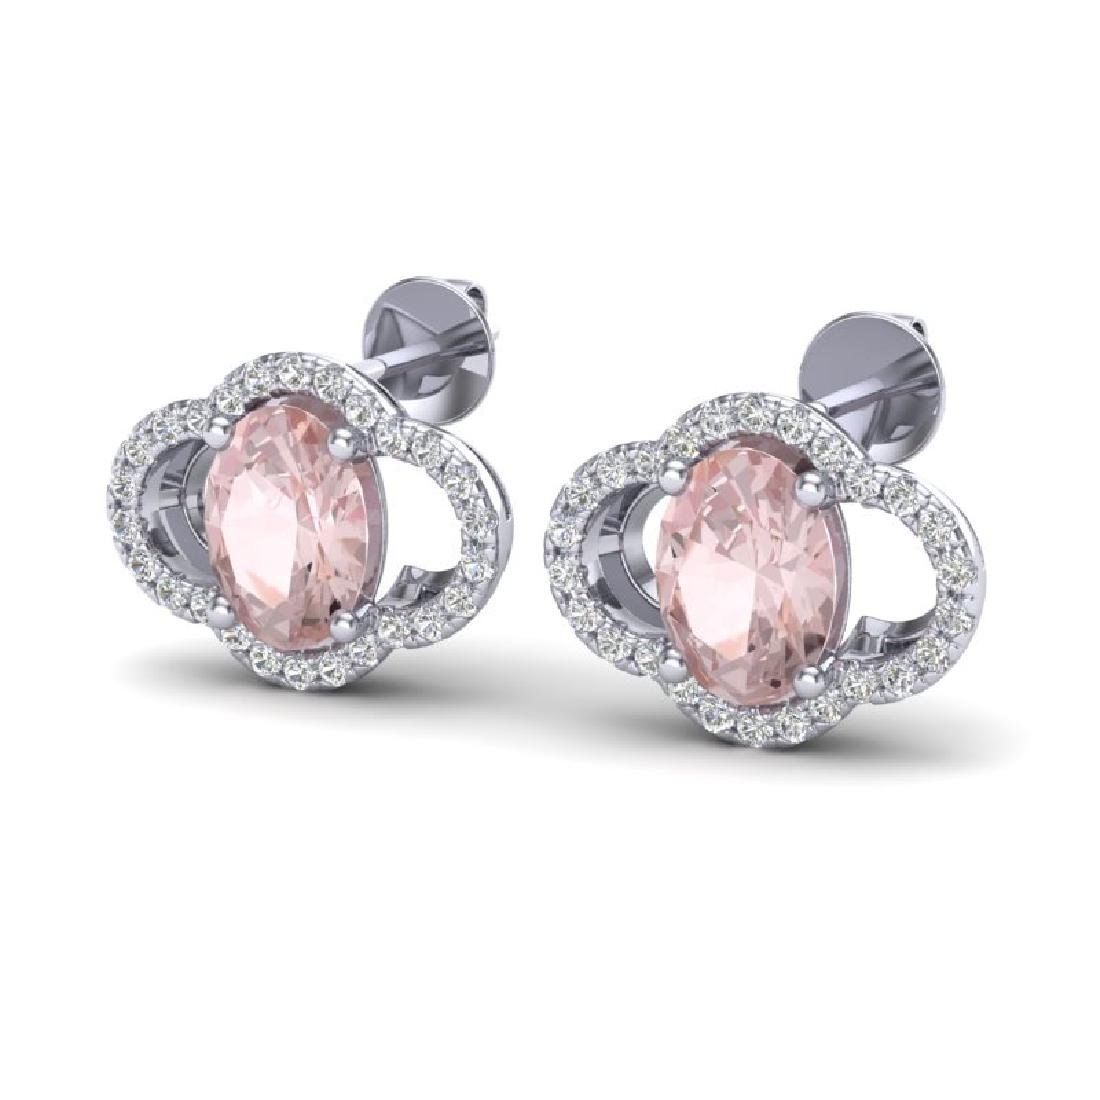 3.50 CTW Morganie & Micro Pave VS/SI Diamond Earrings